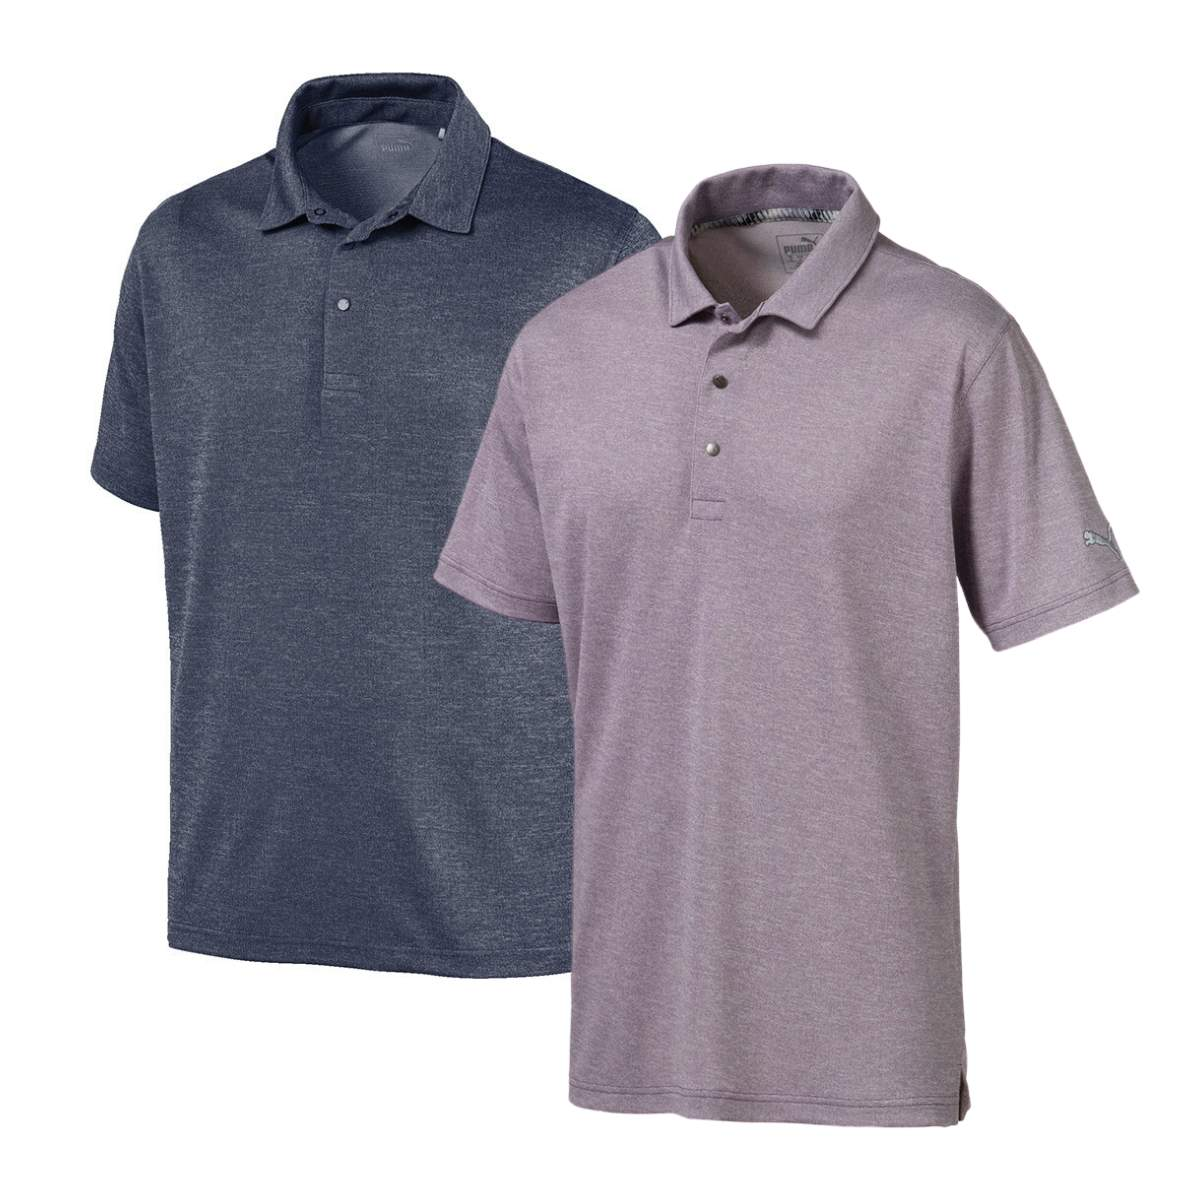 Puma Men's Grill To Green Heathered Polo